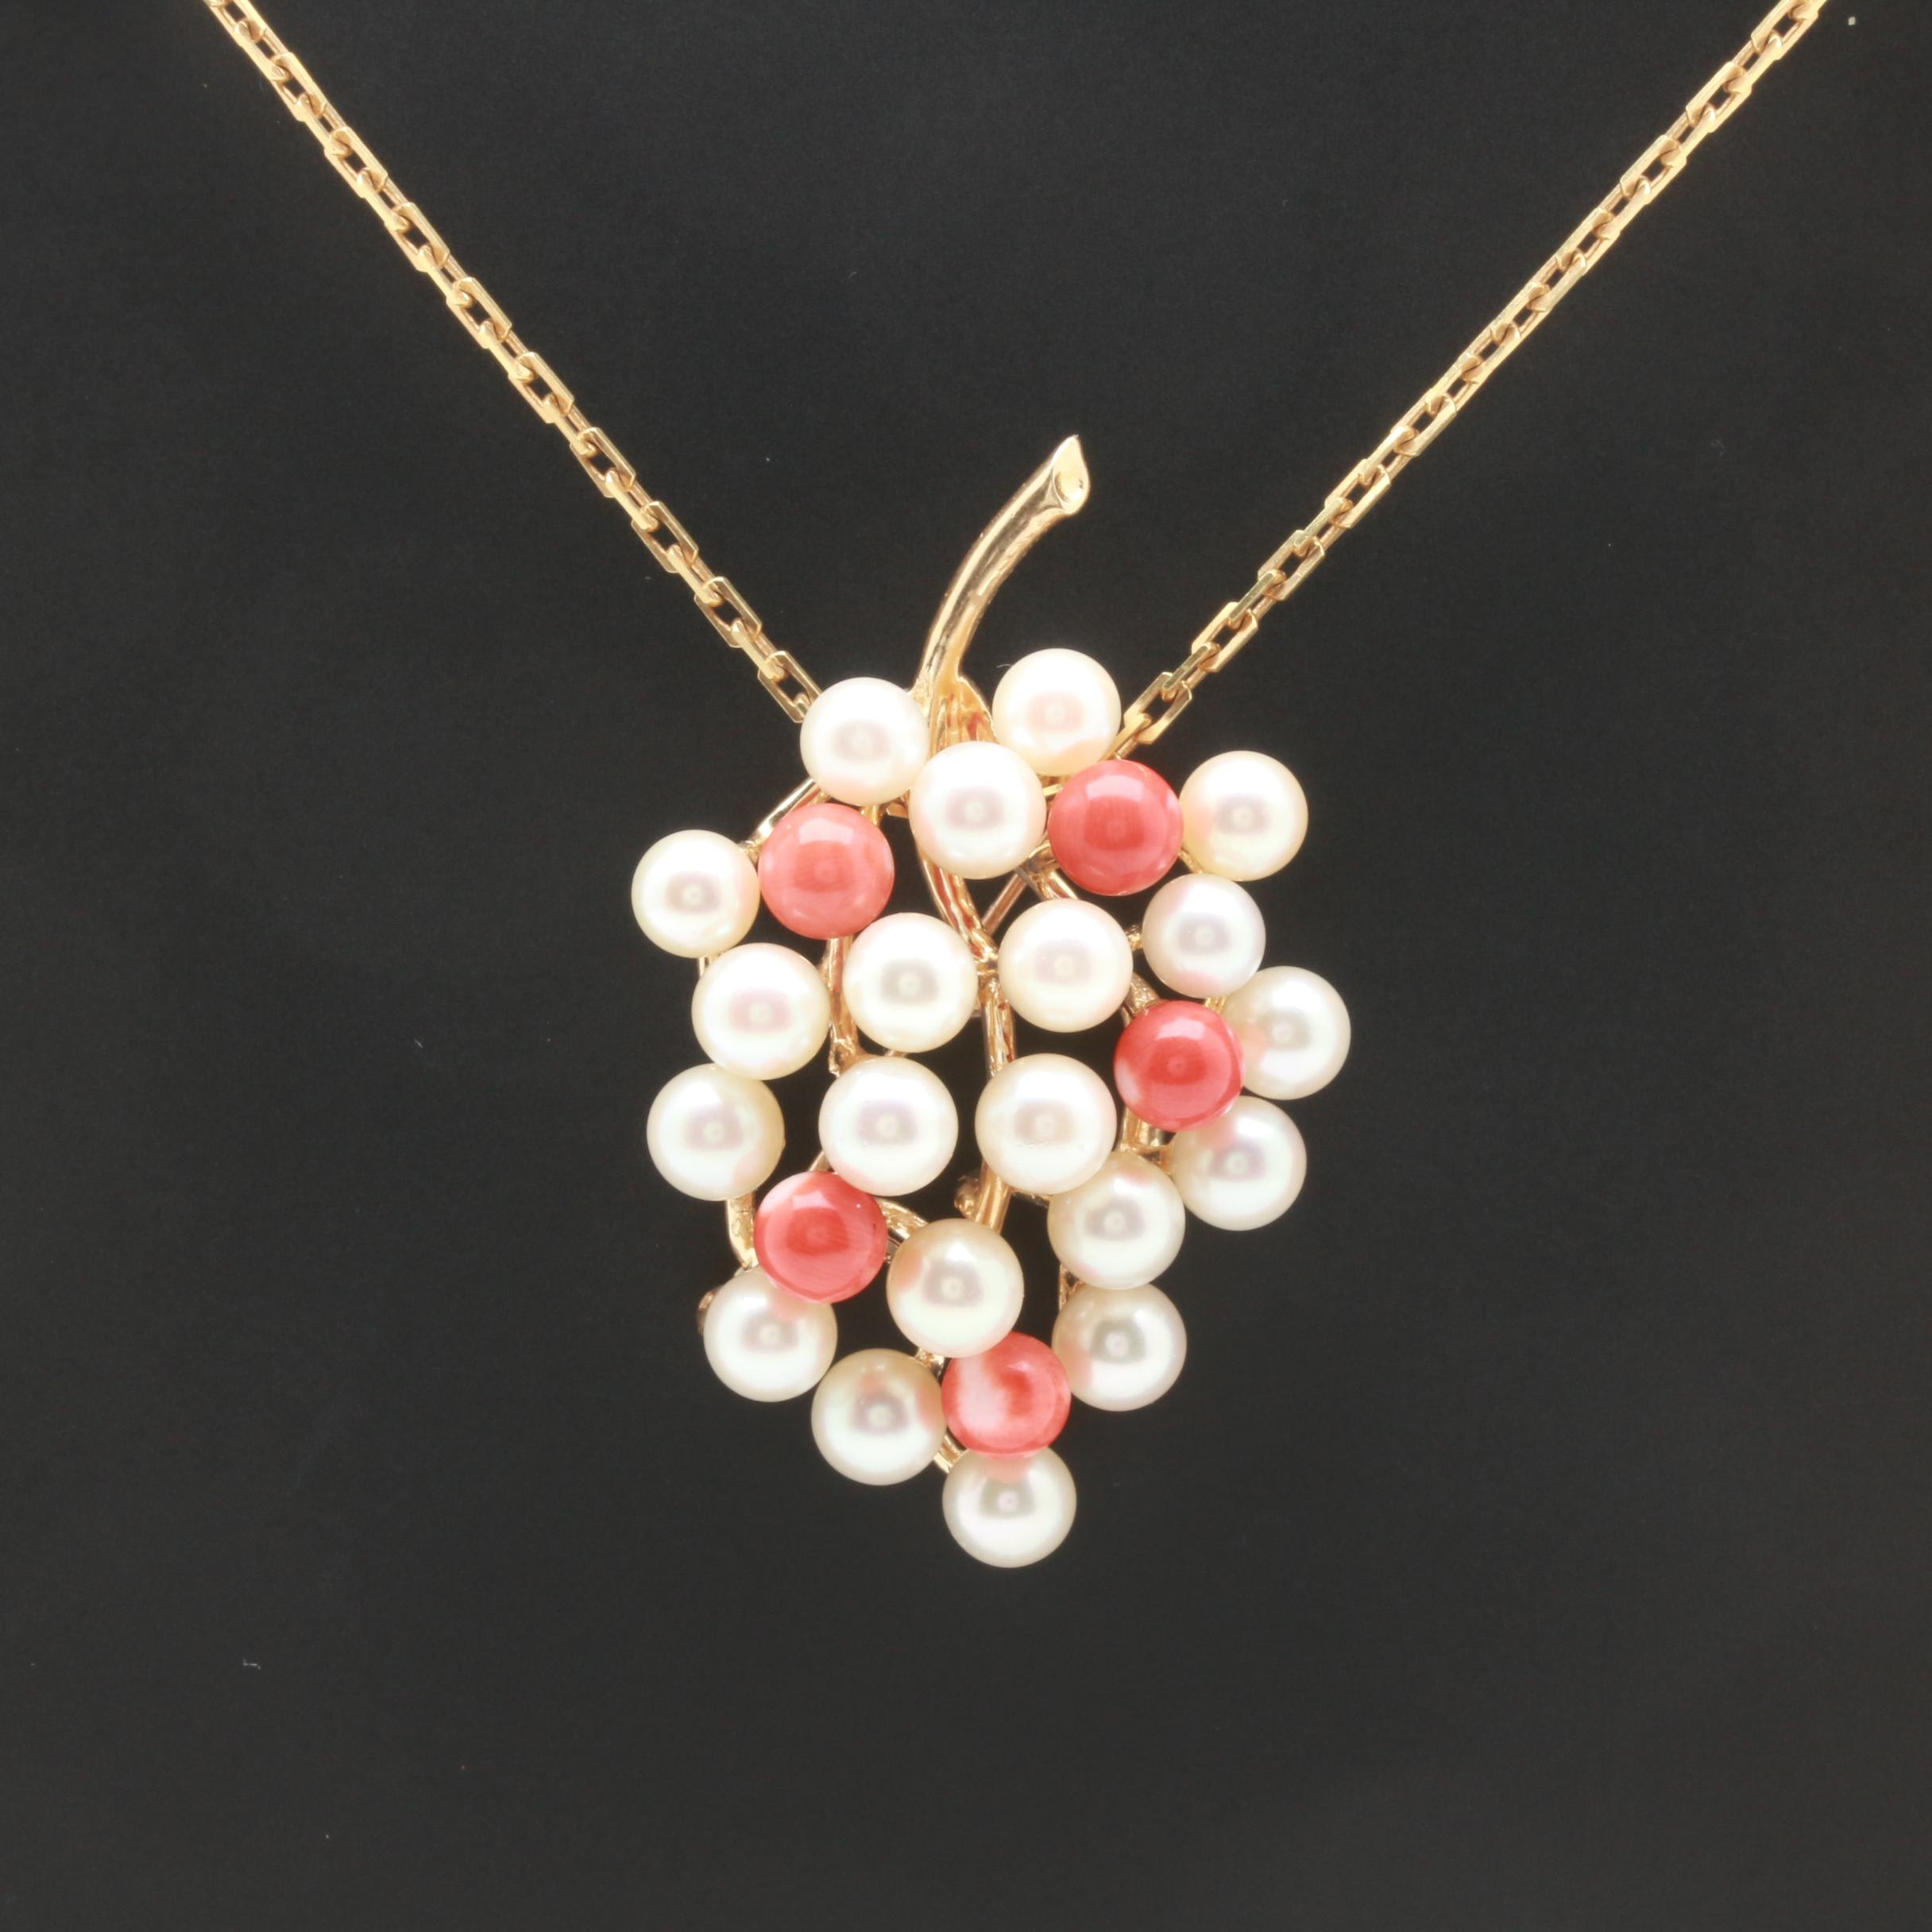 14K Yellow Gold Coral and Cultured Pearl Brooch With Chain